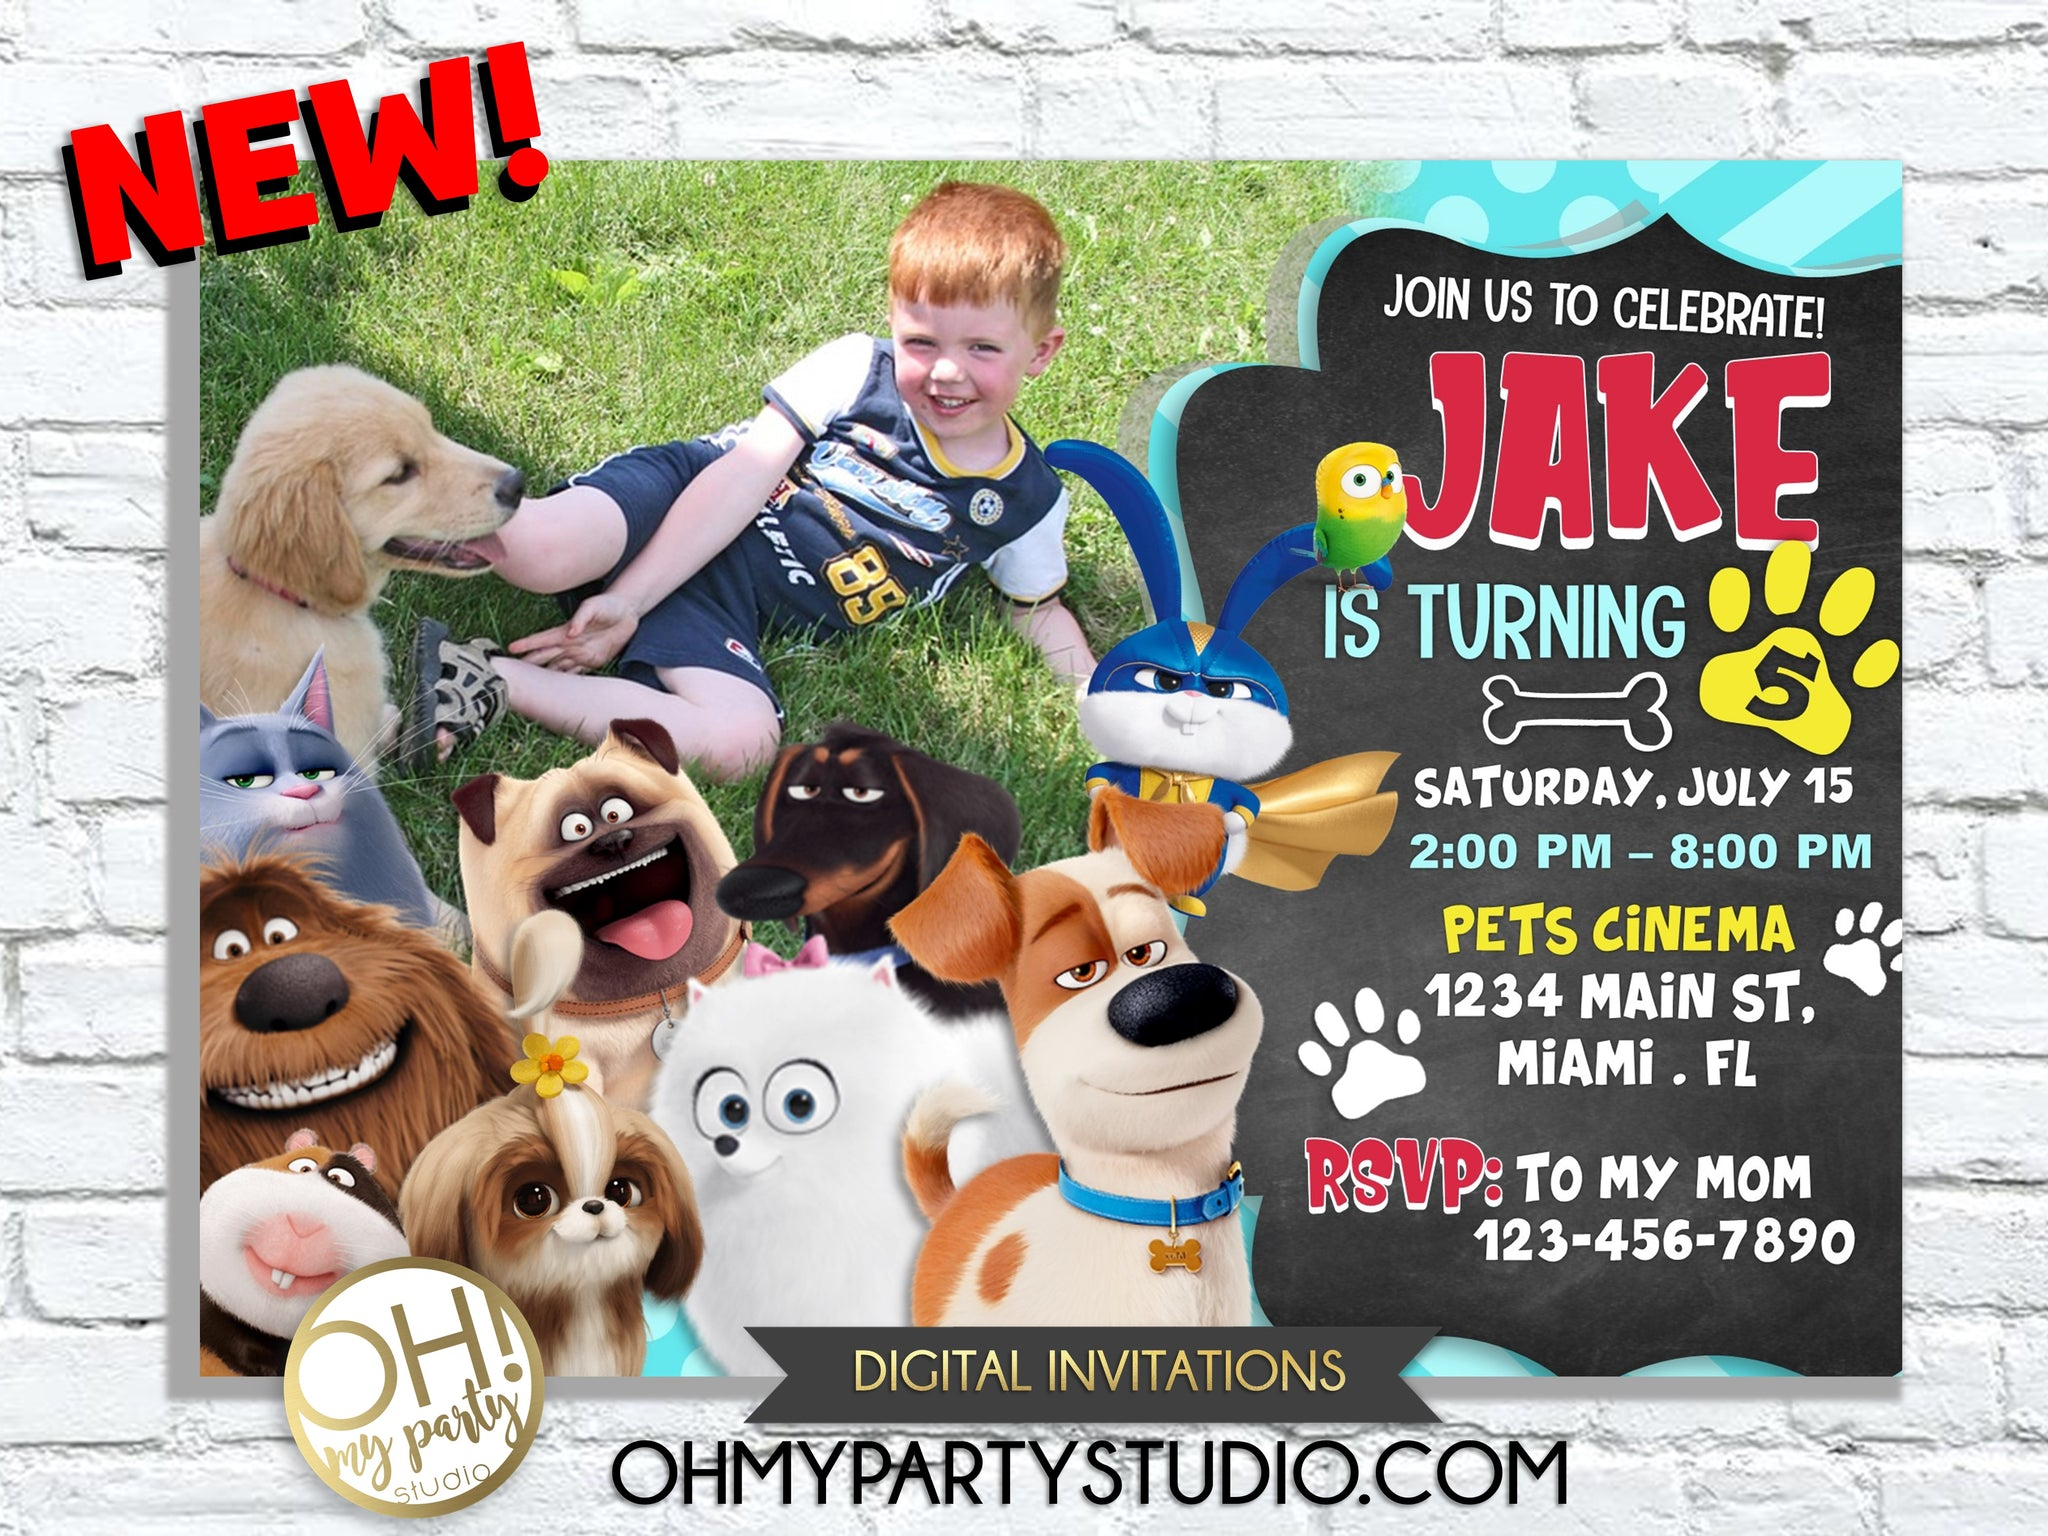 The Secret Life of Pets 2 Birthday Party invitation, Printable The Secret Life of Pets 2 Birthday Party Invites, Secret Life Of Pets 2 Invitation for Birthday Party,Secret Life Of Pets 2 birthday invitation, Secret Life Of Pets 2 invitations, ticket, pets 2 invitation, pets 2 invitations, pets 2 party printables,  The Secret Life of Pets 2 invitations,  The Secret Life of Pets 2 invitation,  The Secret Life of Pets 2 birthday,  The Secret Life of Pets 2 party,  The Secret Life of Pets 2 birthday invitation